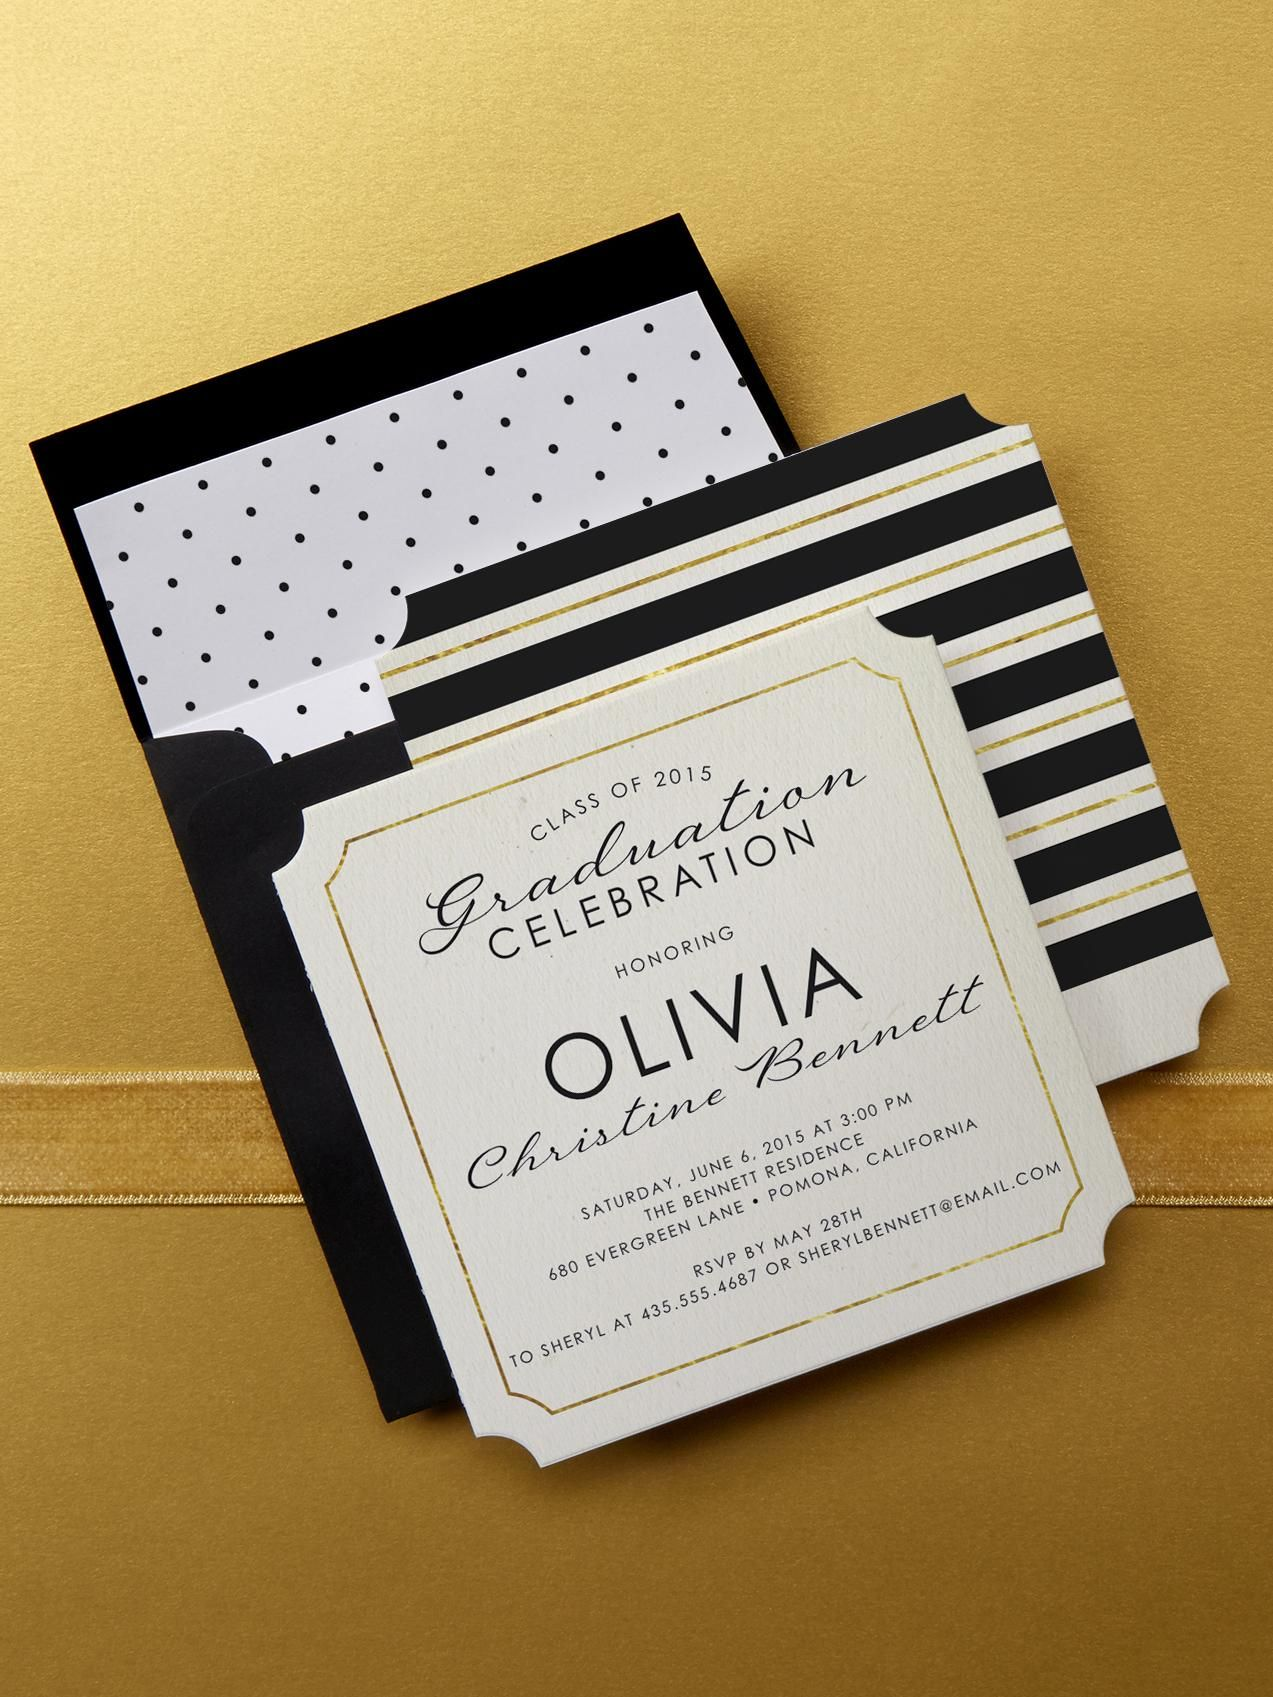 Choose a linen graduation invitation design at tiny prints to make choose a linen graduation invitation design at tiny prints to make your graduation feel special this 2015 celebrate your grad filmwisefo